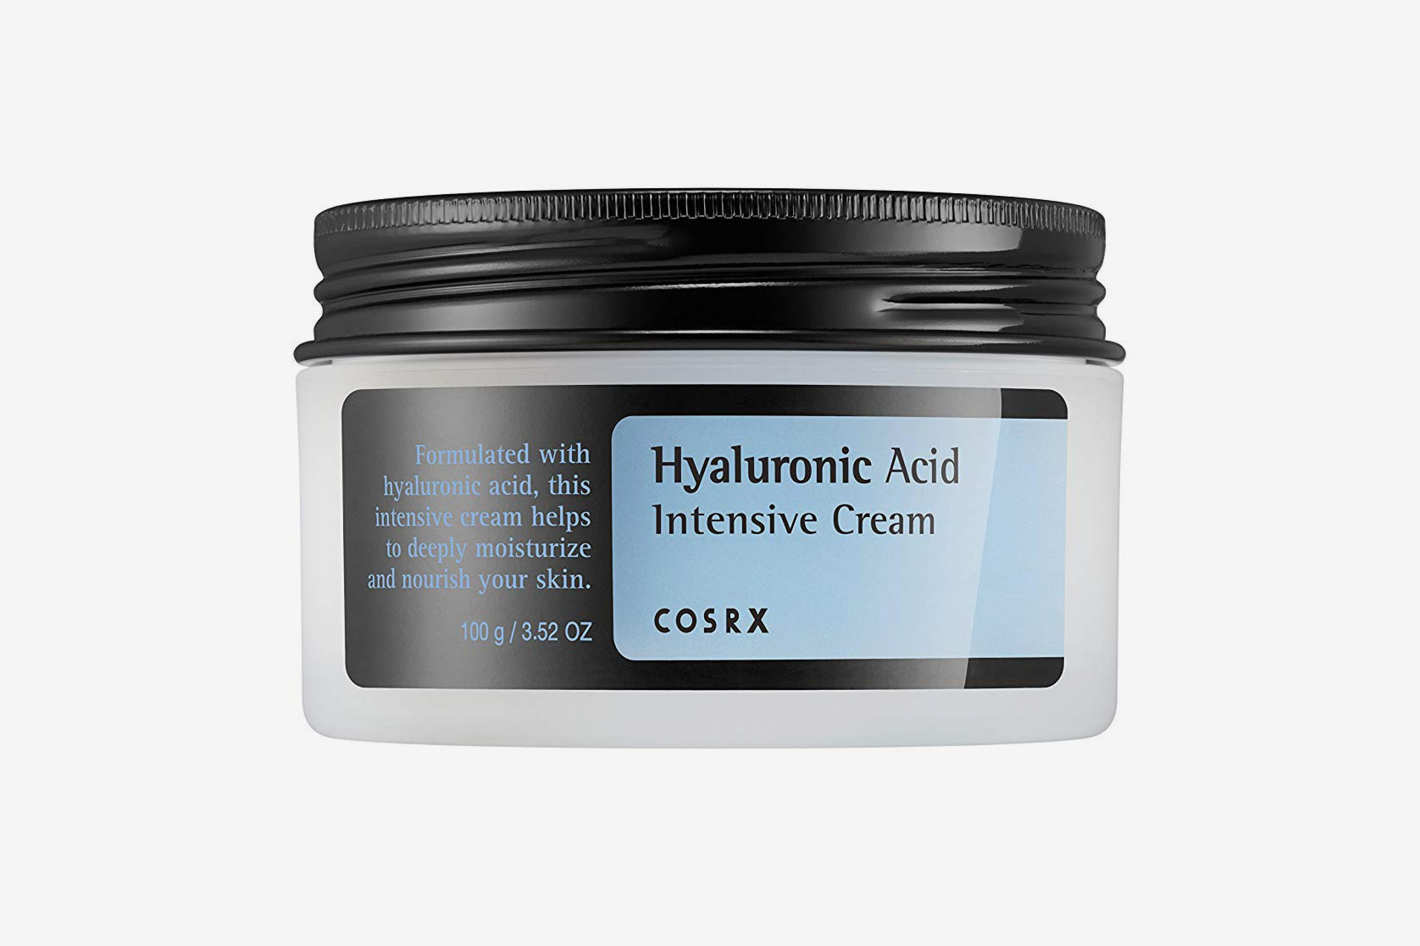 Coxrx Hyaluronic Acid Intensive Cream